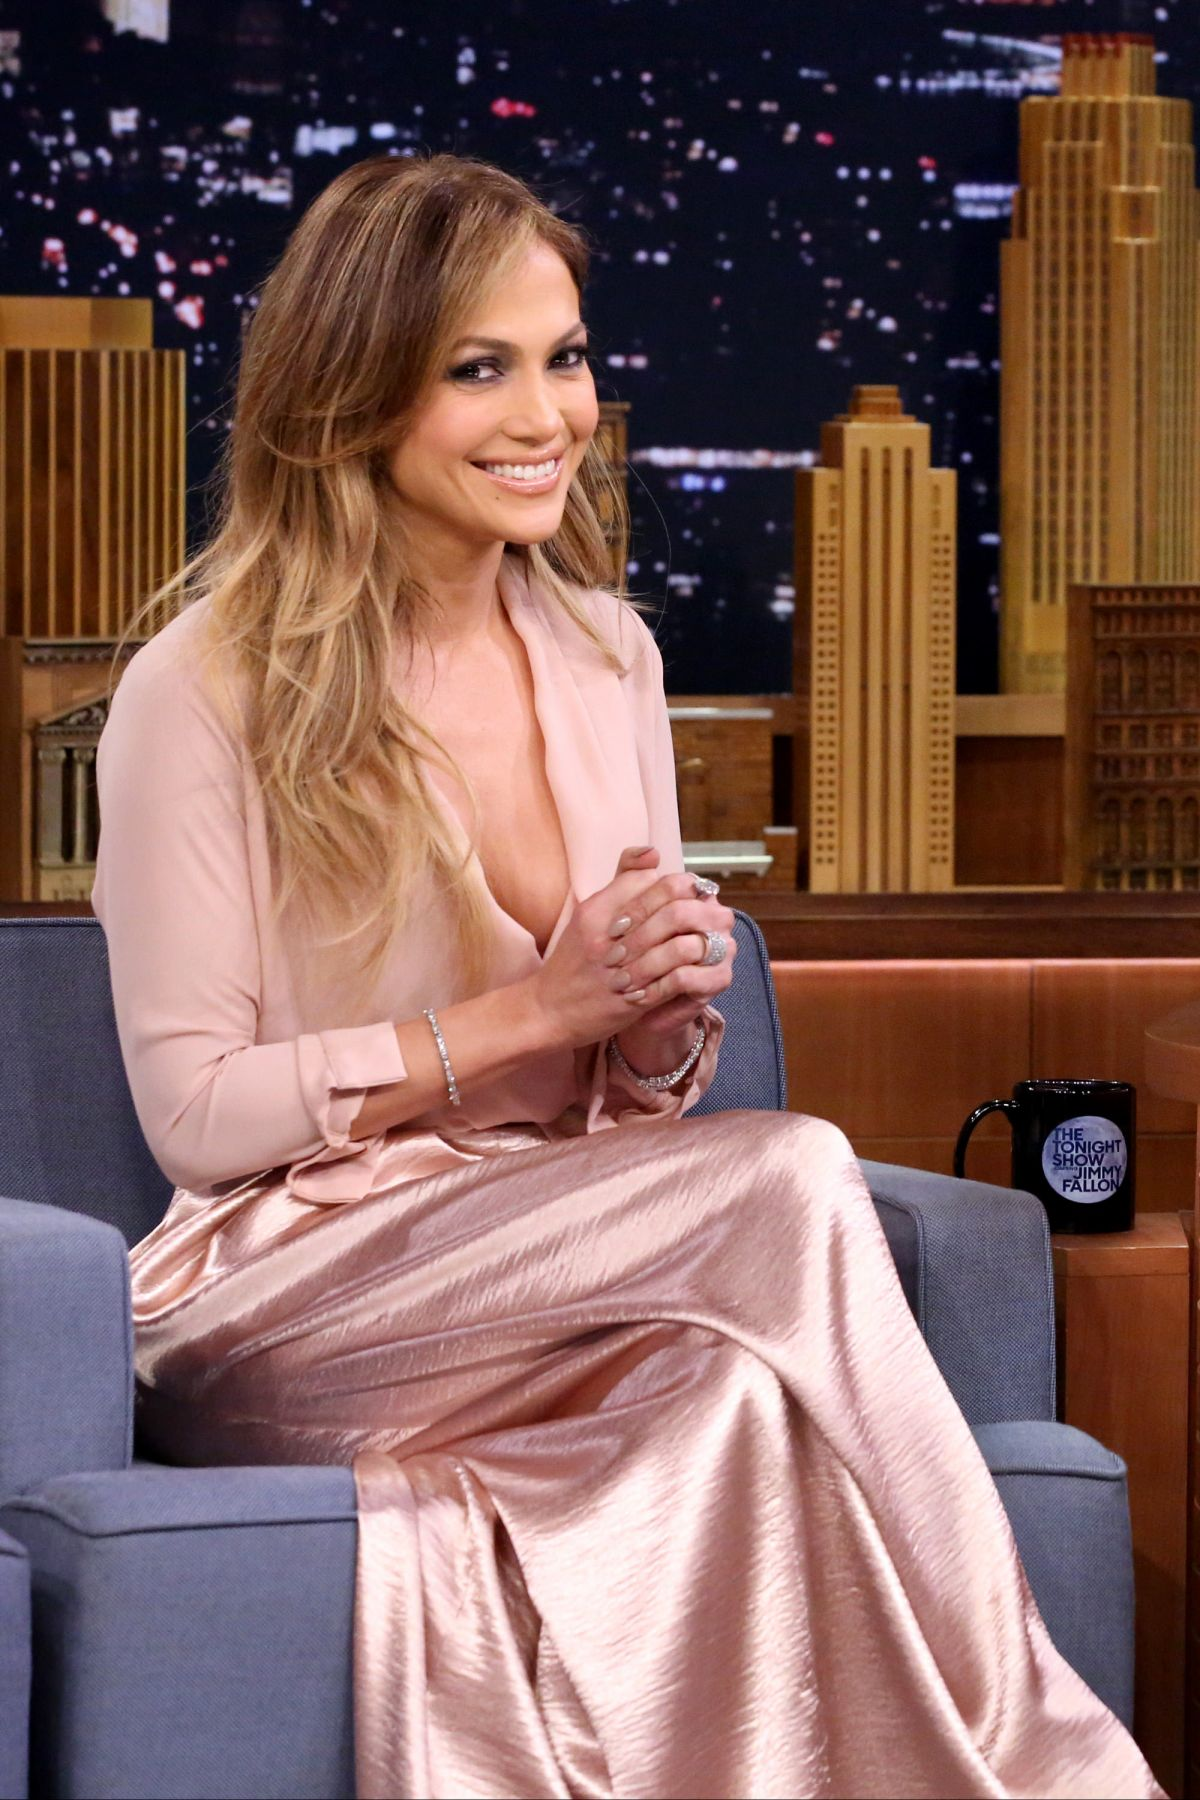 jennifer-lopez-guesting-at-the-tonight-show-starring-jimmy-fallon-in-new-york-city_4